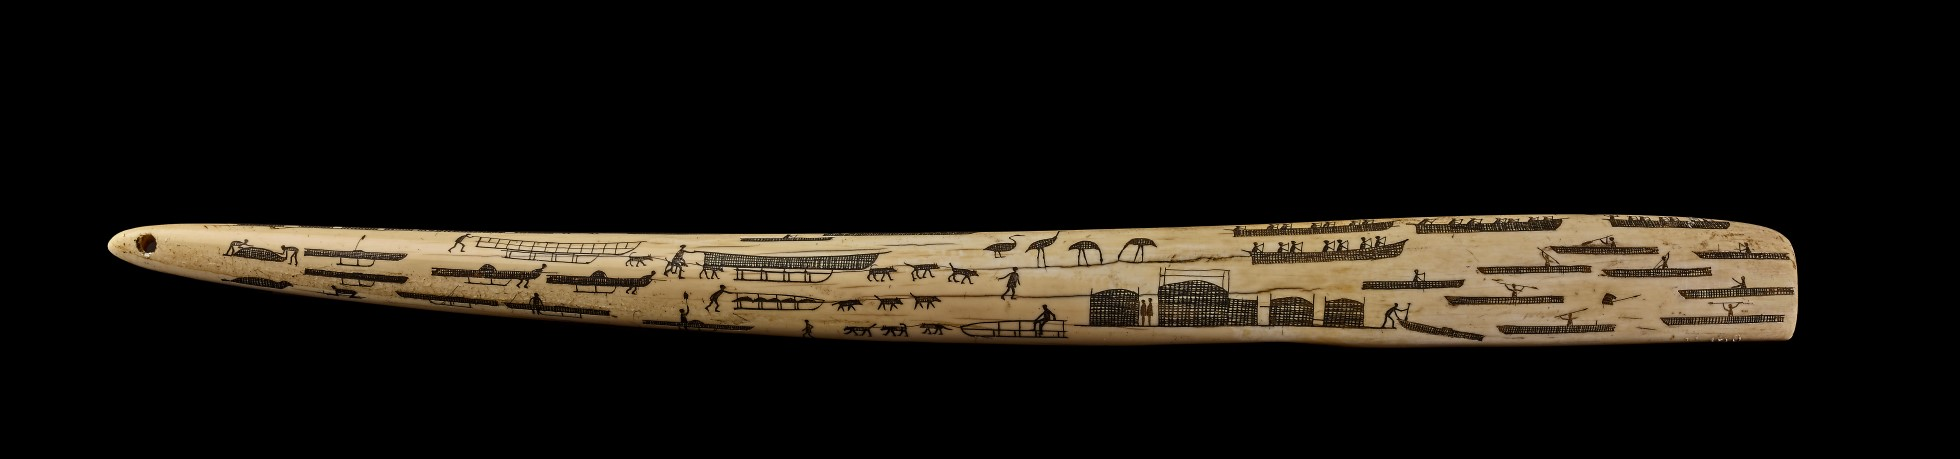 Engraved walrus tusk with scenes engraved and shown in black.